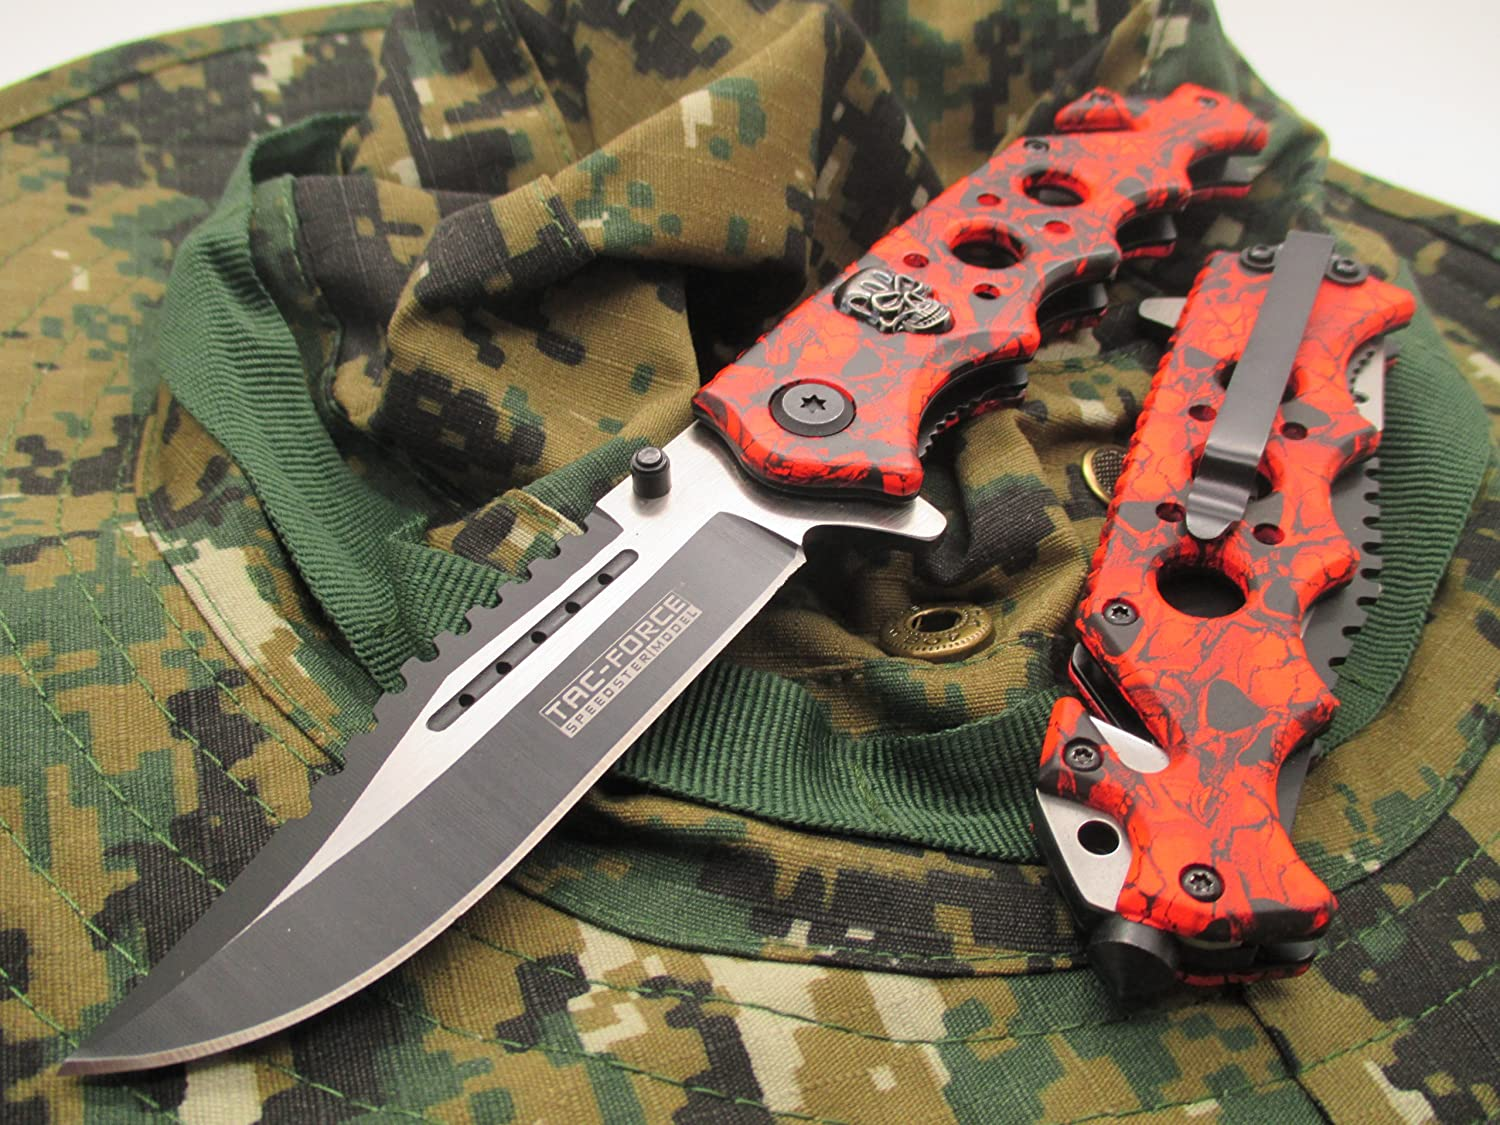 New TAC-Force Assisted Opening Linerlock Red & Black w/Skull Design A/O Speed Rescue Glass Breaker Knife